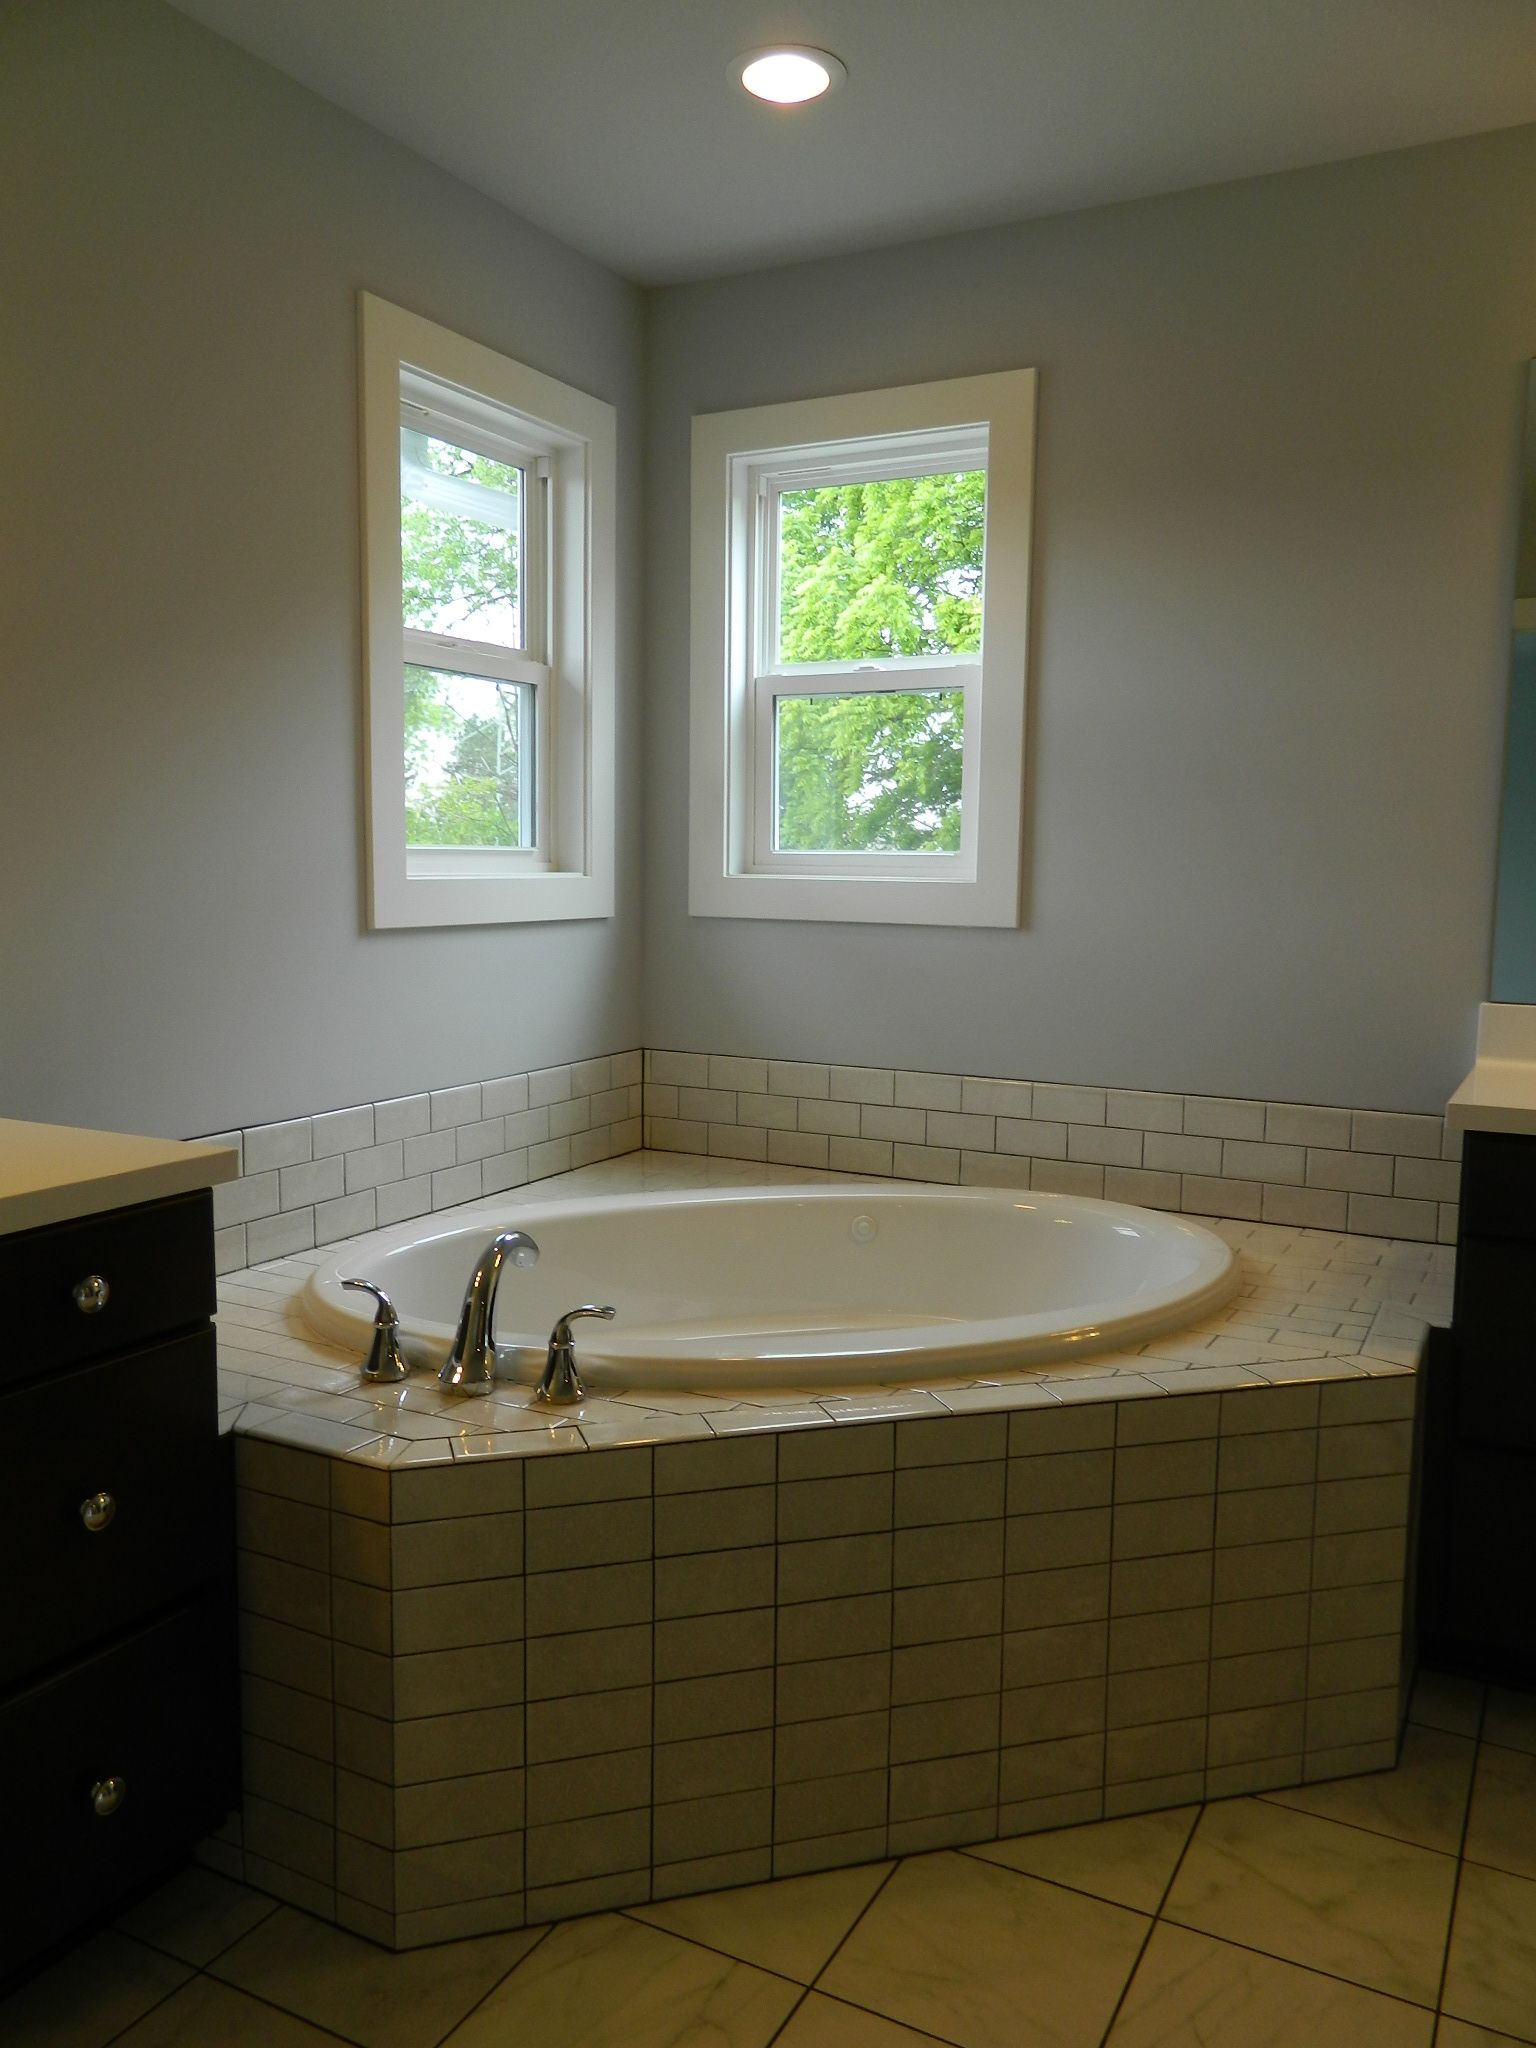 Subway tile tub deck with drop-in bathtub. Double-hung windows ...